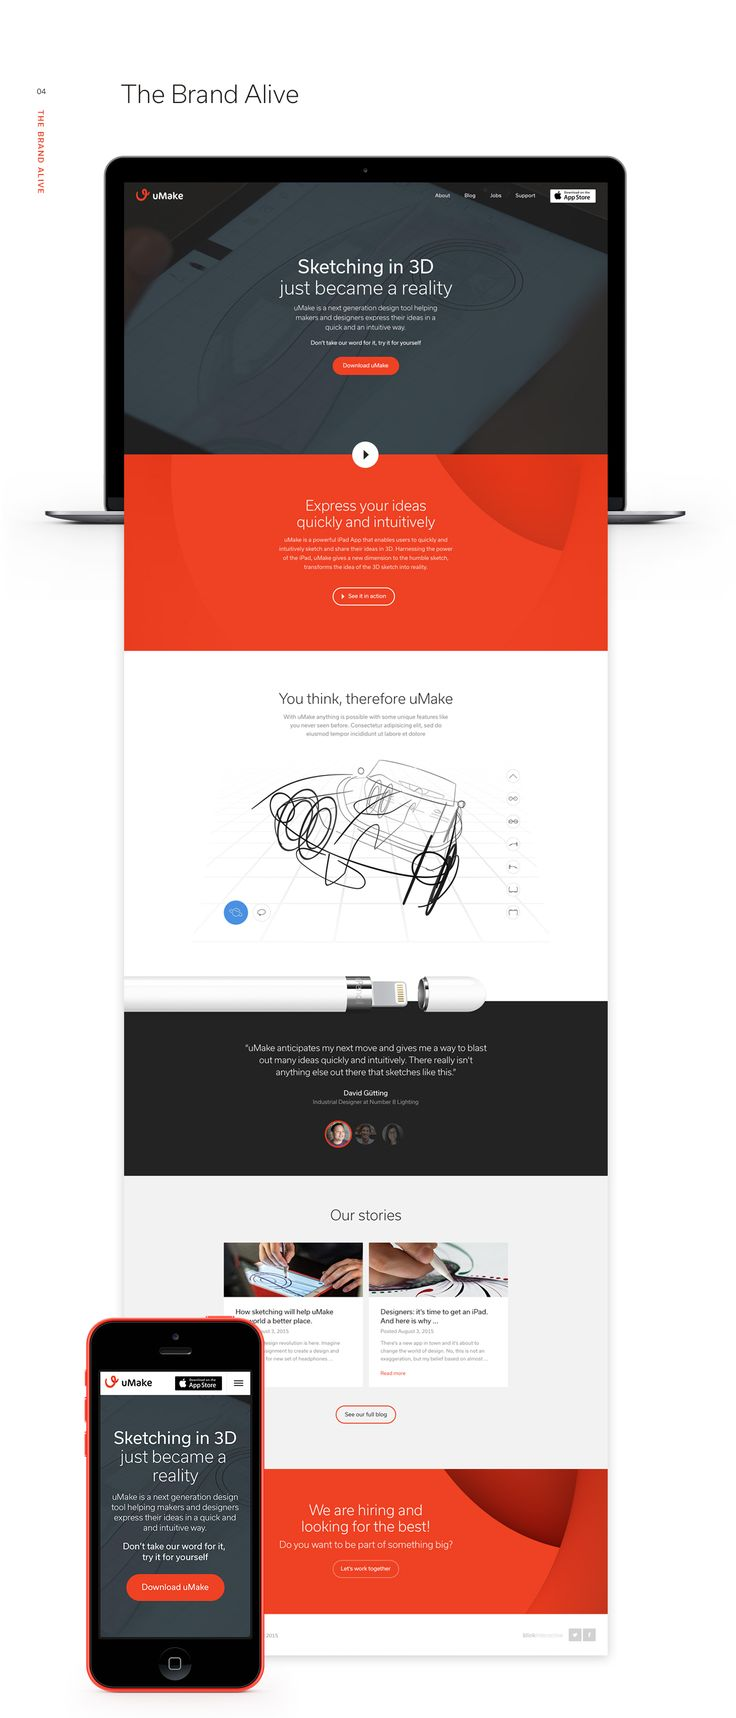 We are really excited that uMake asked us to re-design their brand and promo website for their app called 'uMake'.uMake is a powerful iPad App that enables users to quickly and intuitively sketch and share their ideas in 3D. Harnessing the power of the …